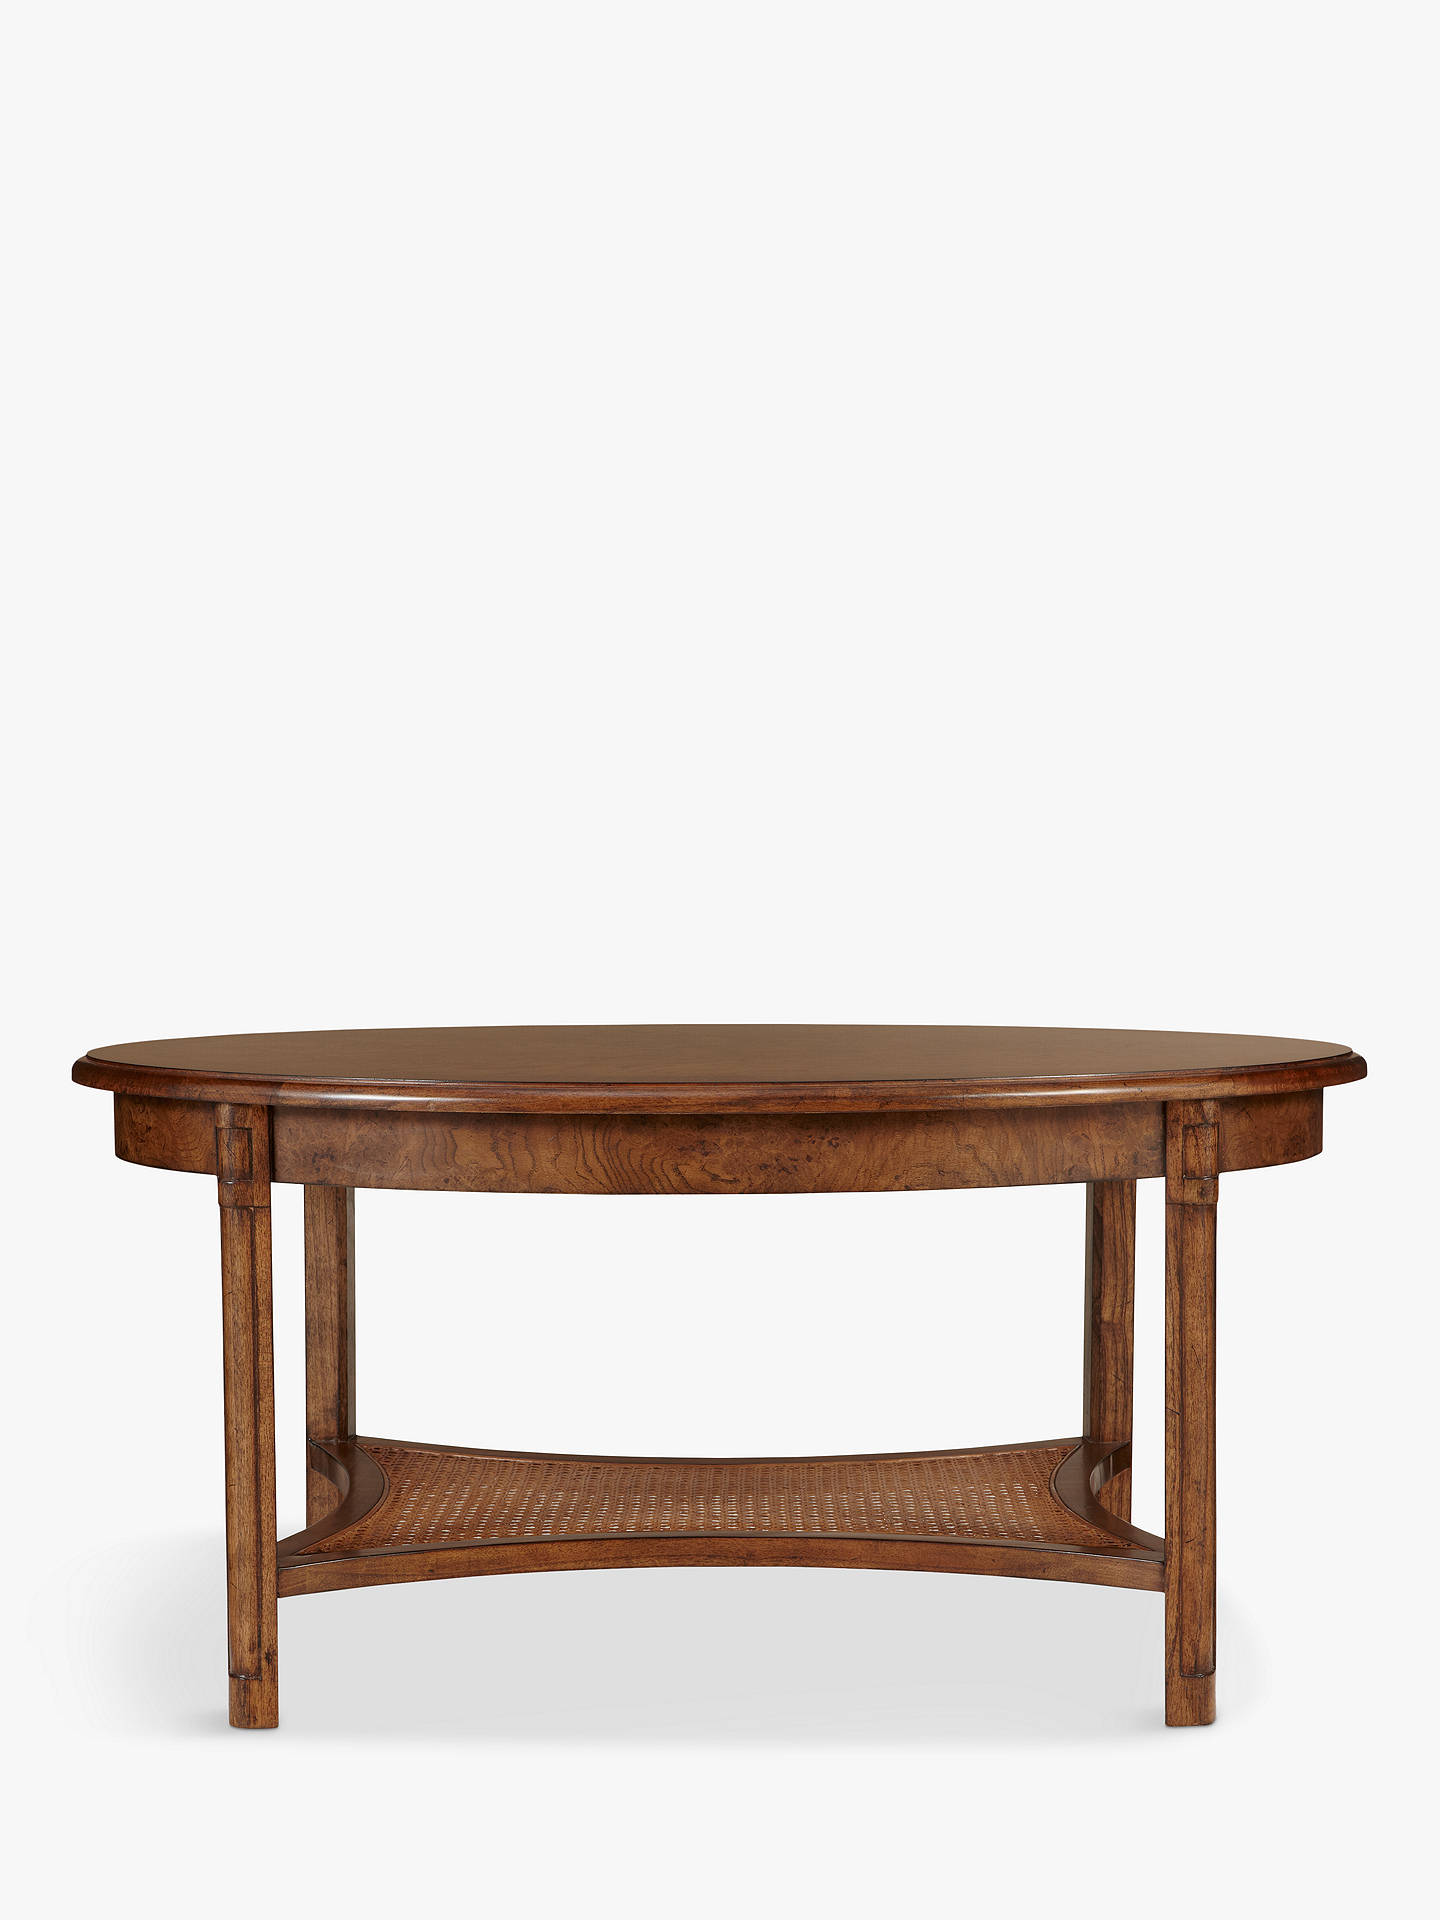 BuyJohn Lewis & Partners Hemingway Oval Coffee Table Online at johnlewis.com